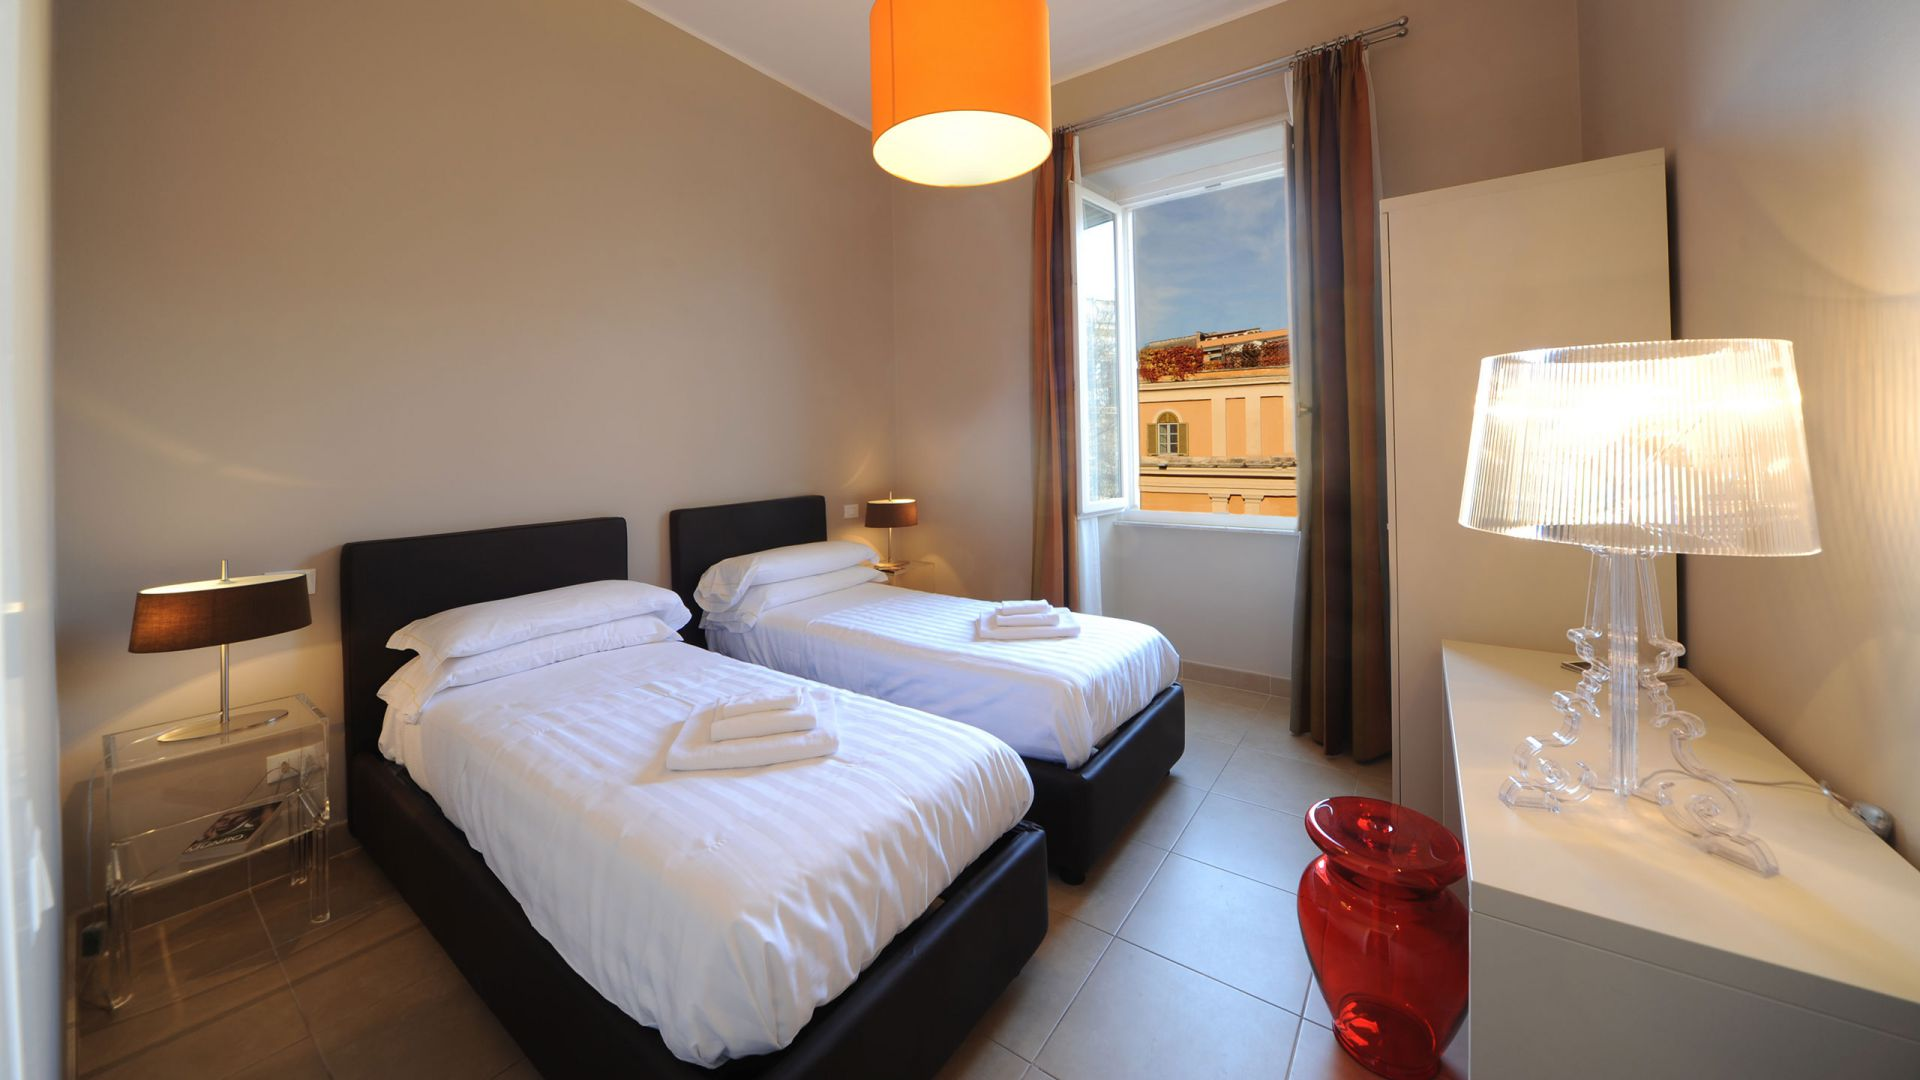 residence-trianon-two-bedroom-apartment-02